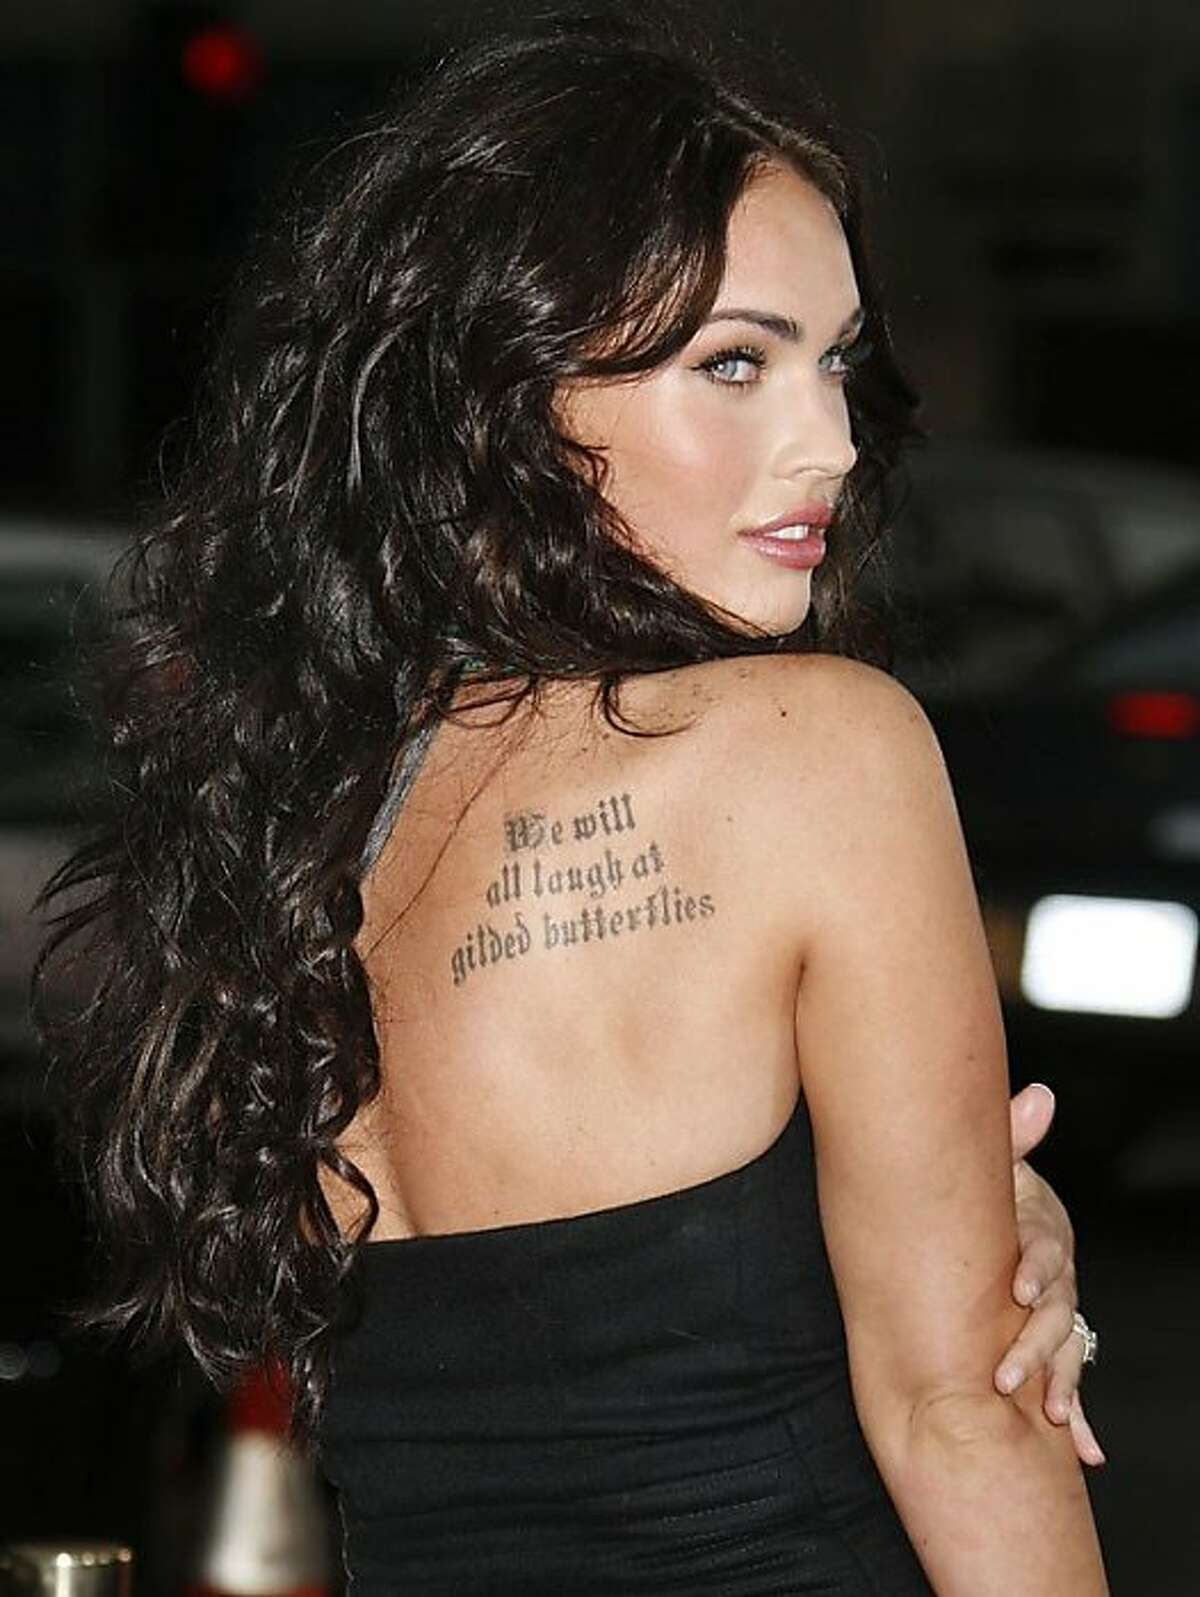 """Megan Fox Don't know about gilded butterflies, but the """"Transformers"""" star has expressed a belief in ancient creatures such as leprechauns. Yellow moons and pink hearts, Megan!"""